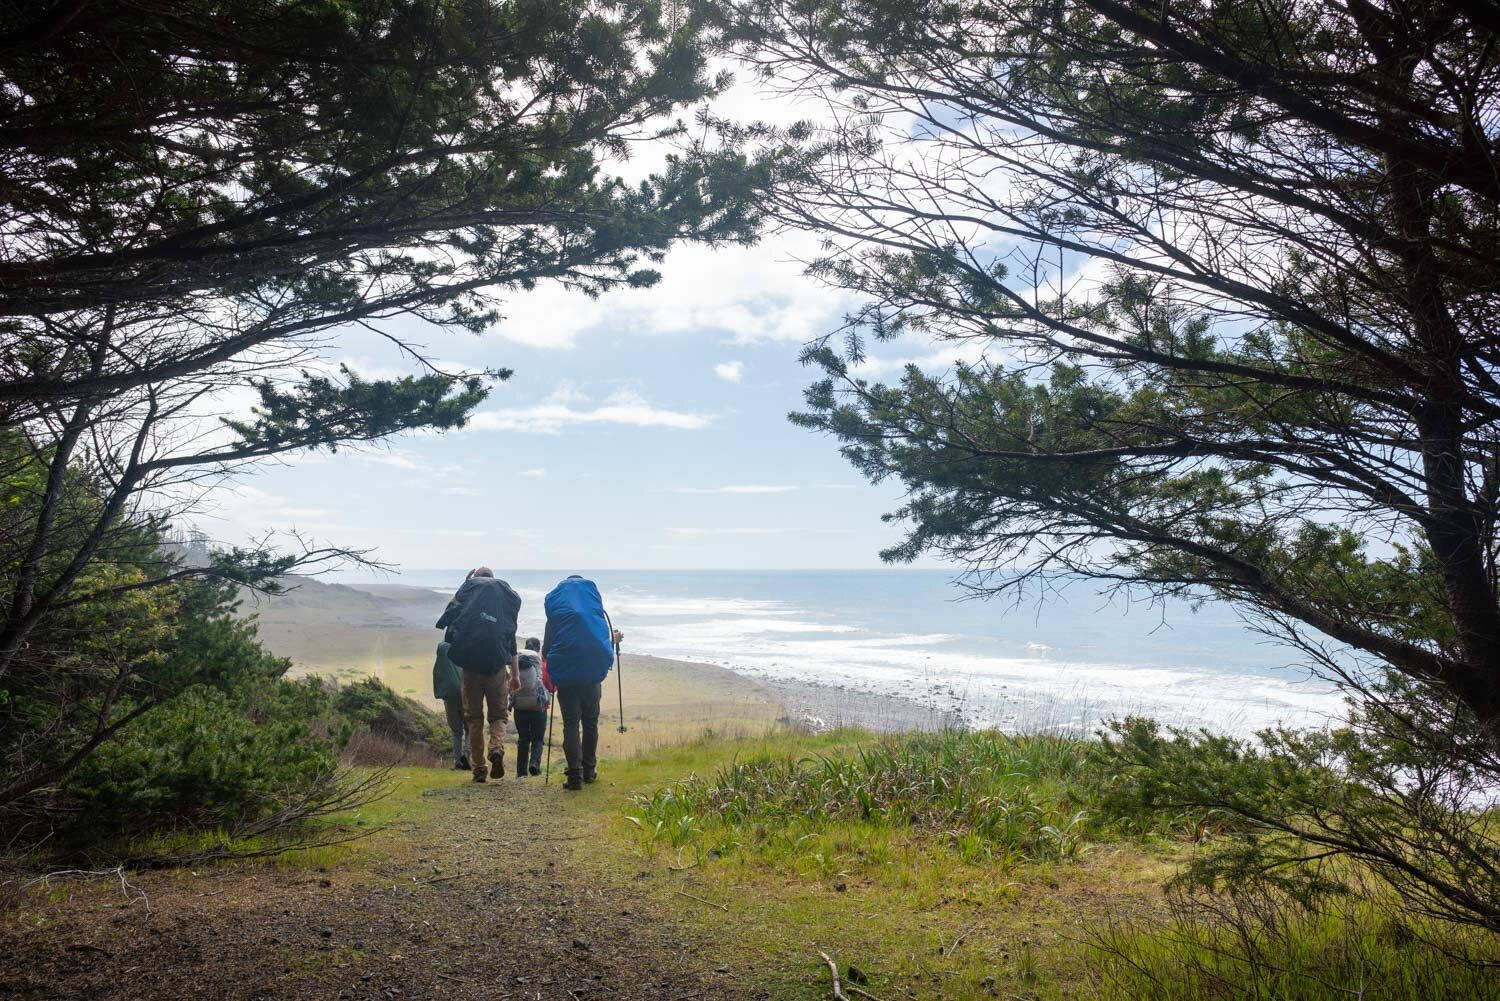 Hiking views on the Lost Coast in the King Range